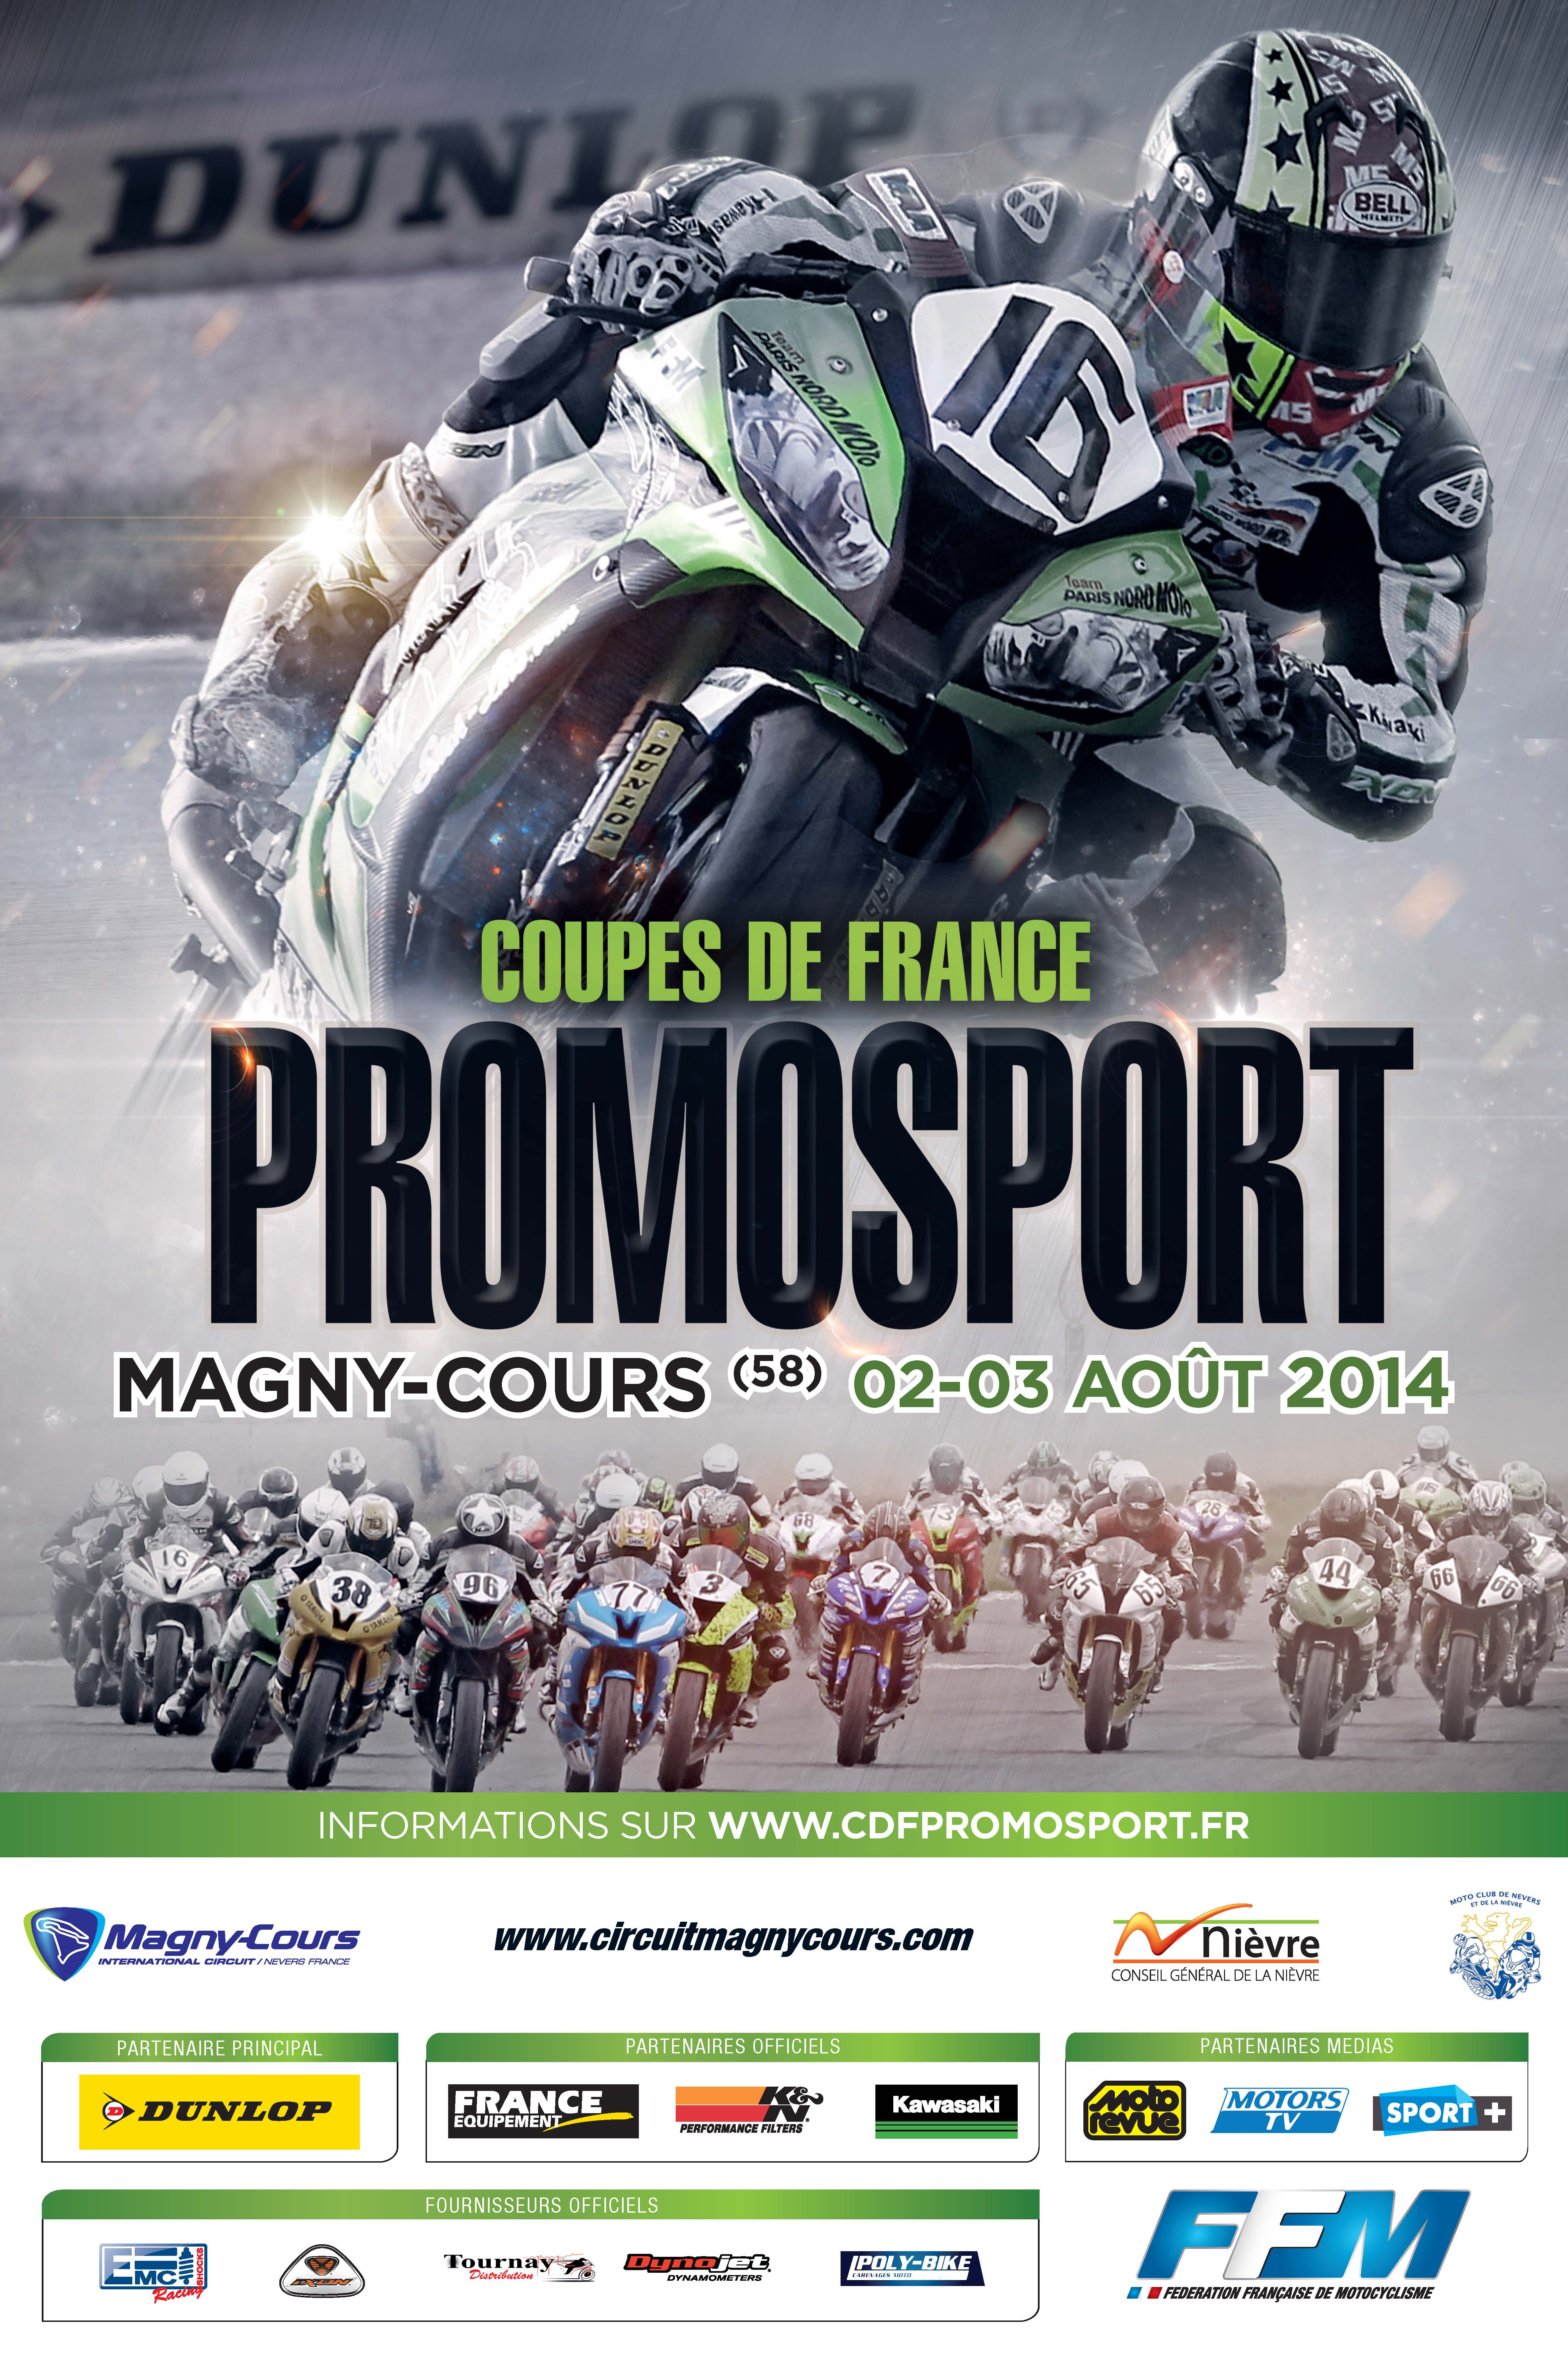 PROMOSPORT 2014 MAGNY-COURS